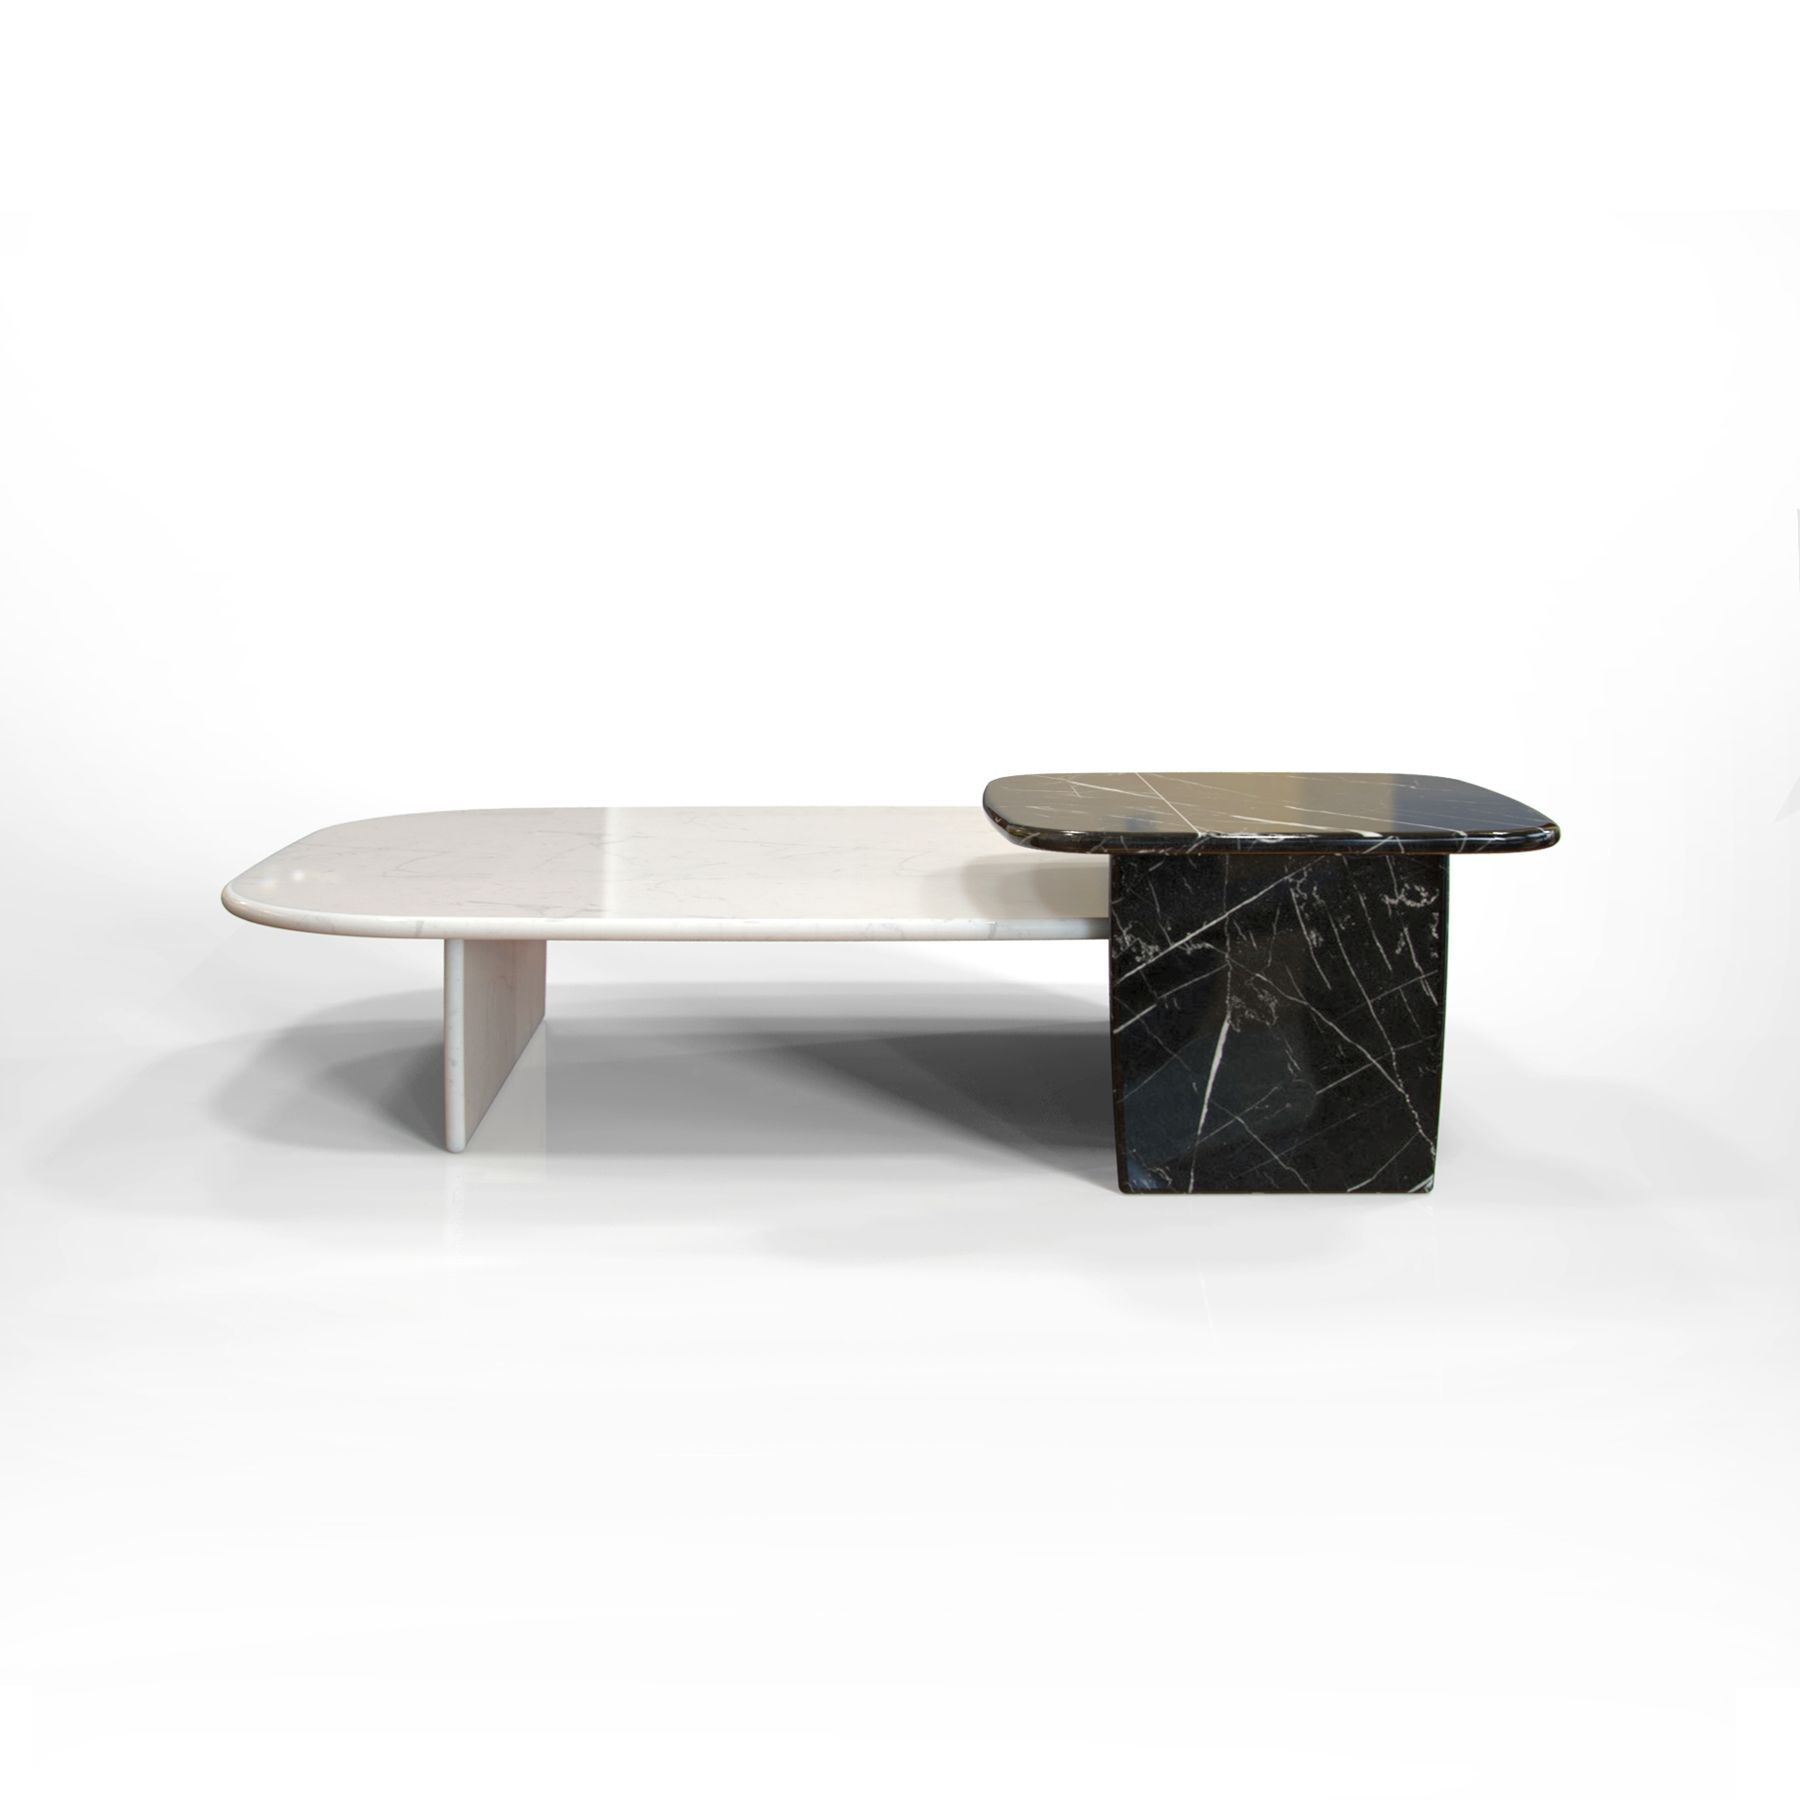 satellite coffee table by cate nelson design studio les tables